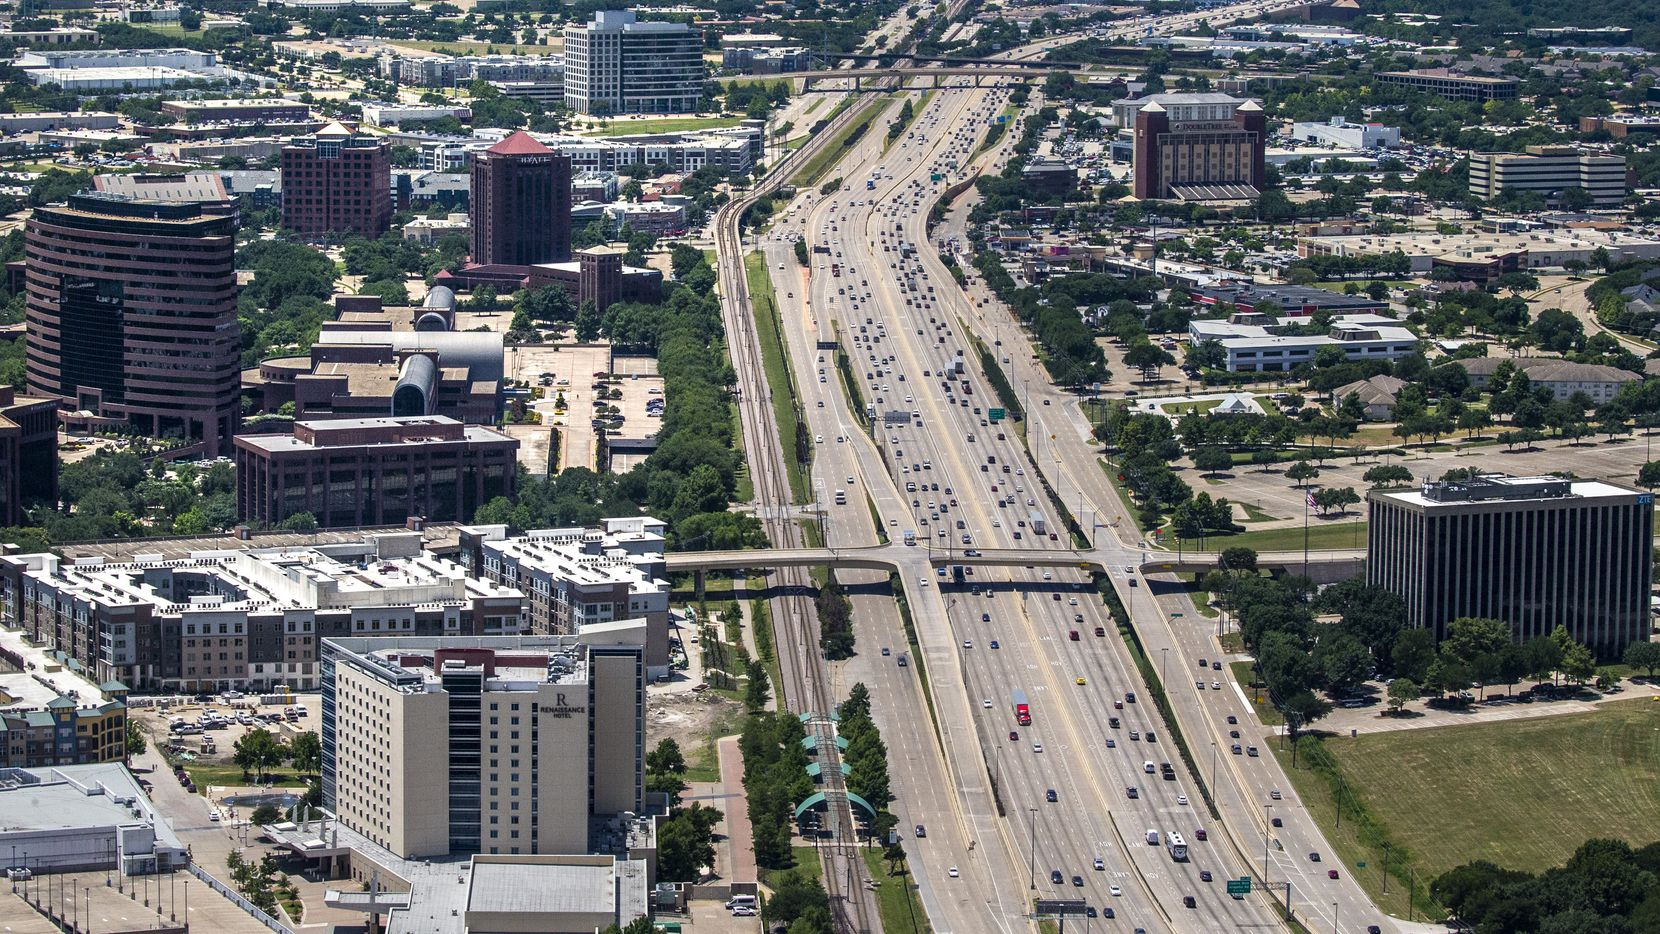 Vehicles travel on U.S. Highway 75 in Richardson in this June file photo. The city is asking residents to weigh in on the branding and redesign of two districts east of the highway that are being targeted for redevelopment.